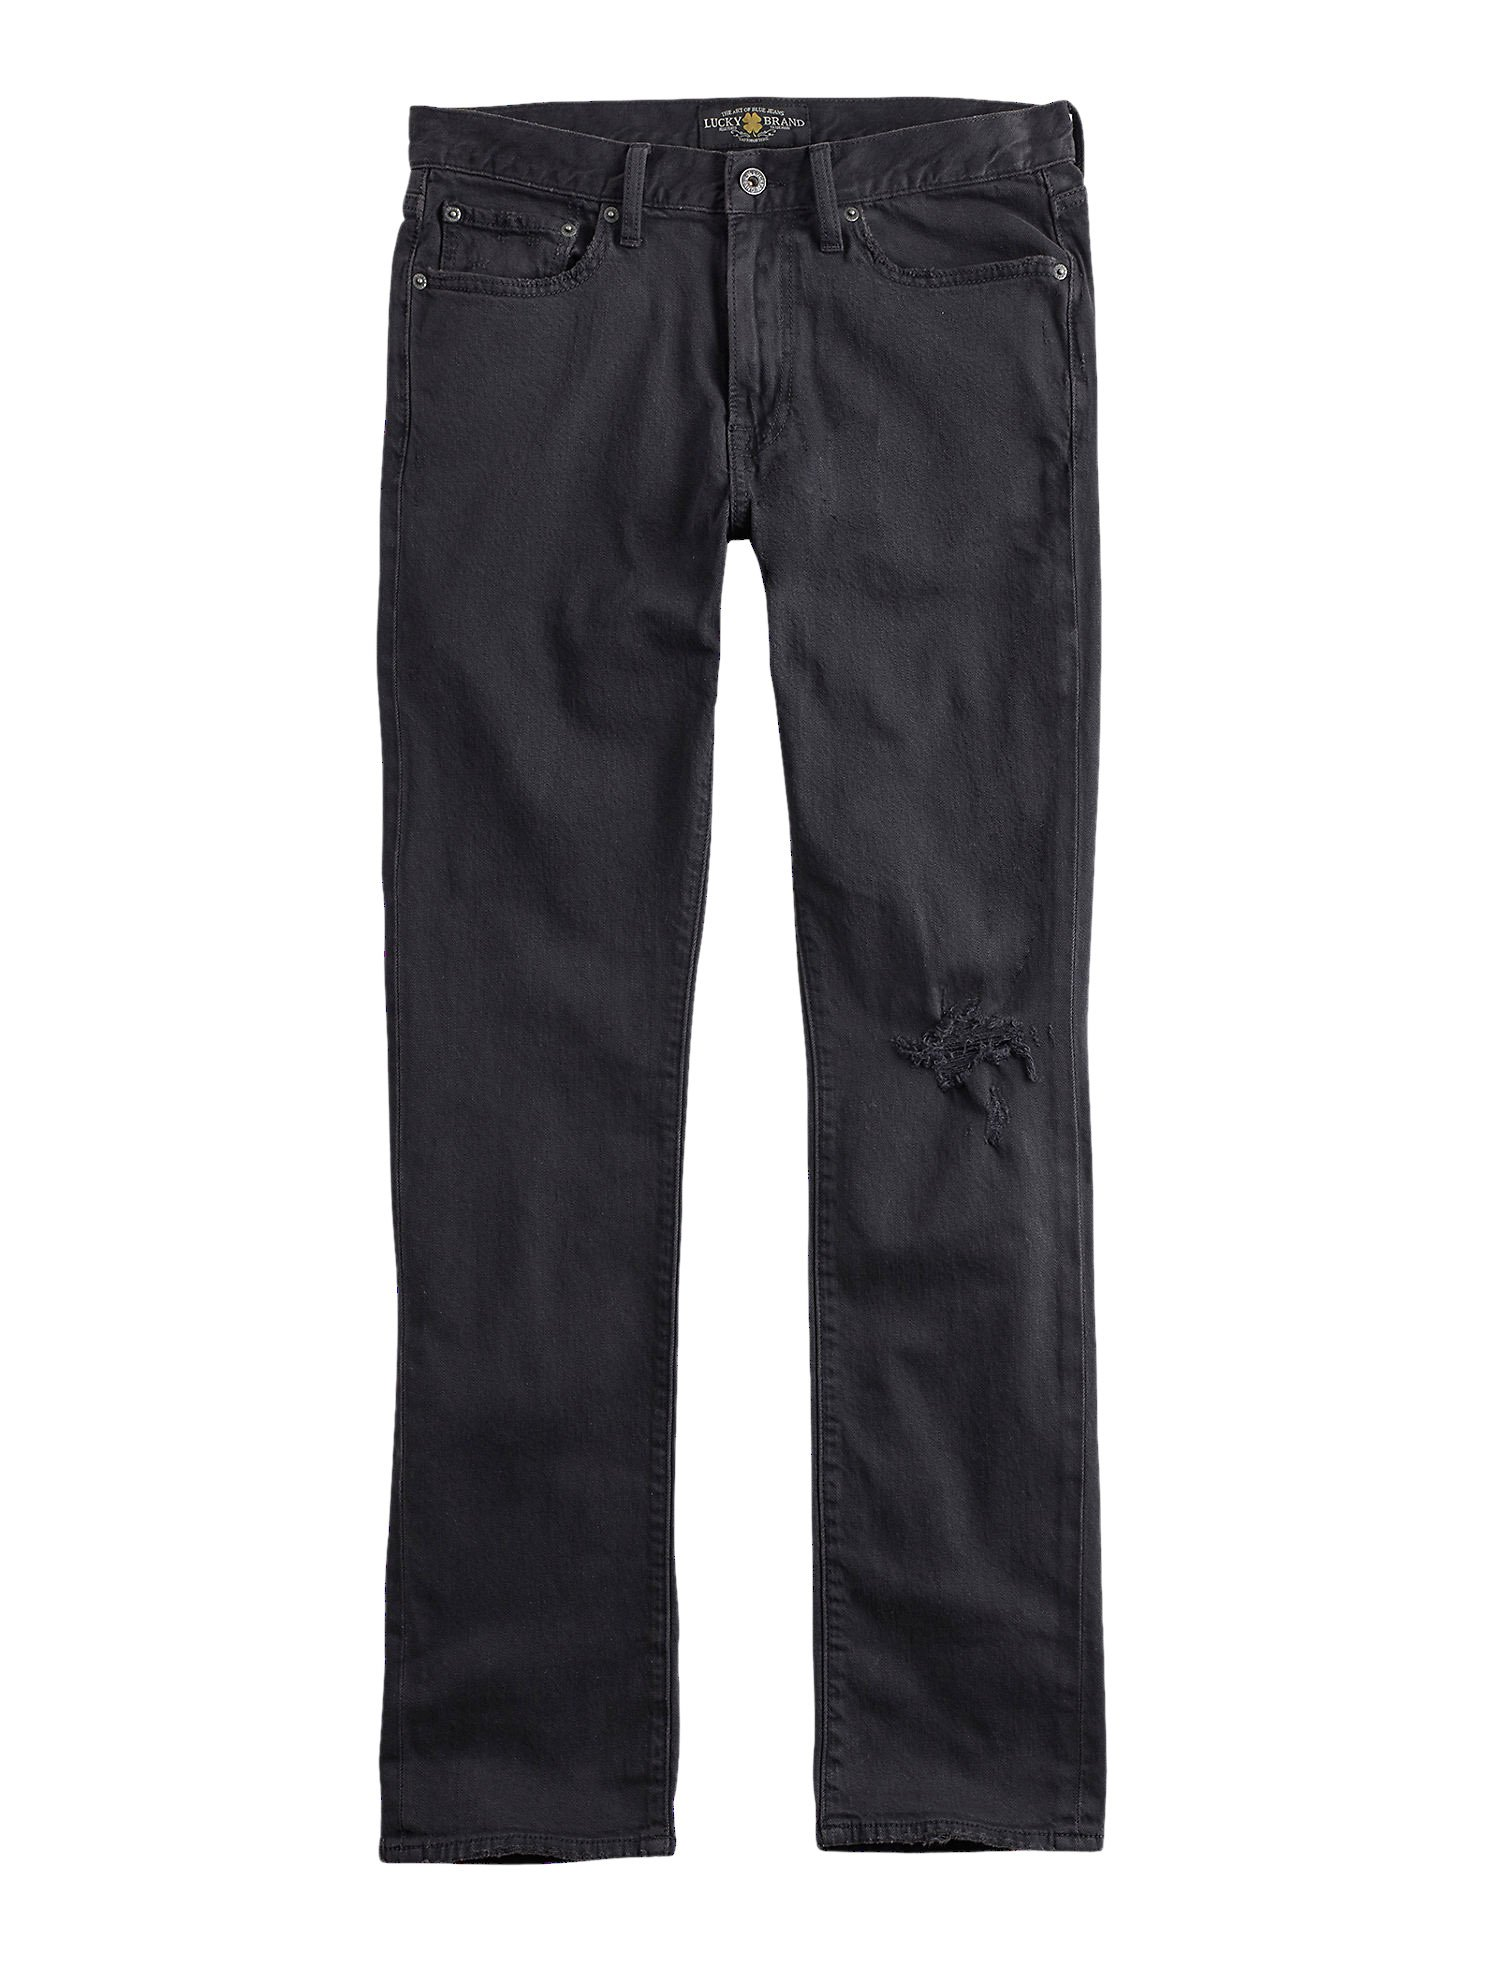 fe074ba1 Lucky Brand Men's Athletic Fit Destroyed Jeans Walker Lake Black ...